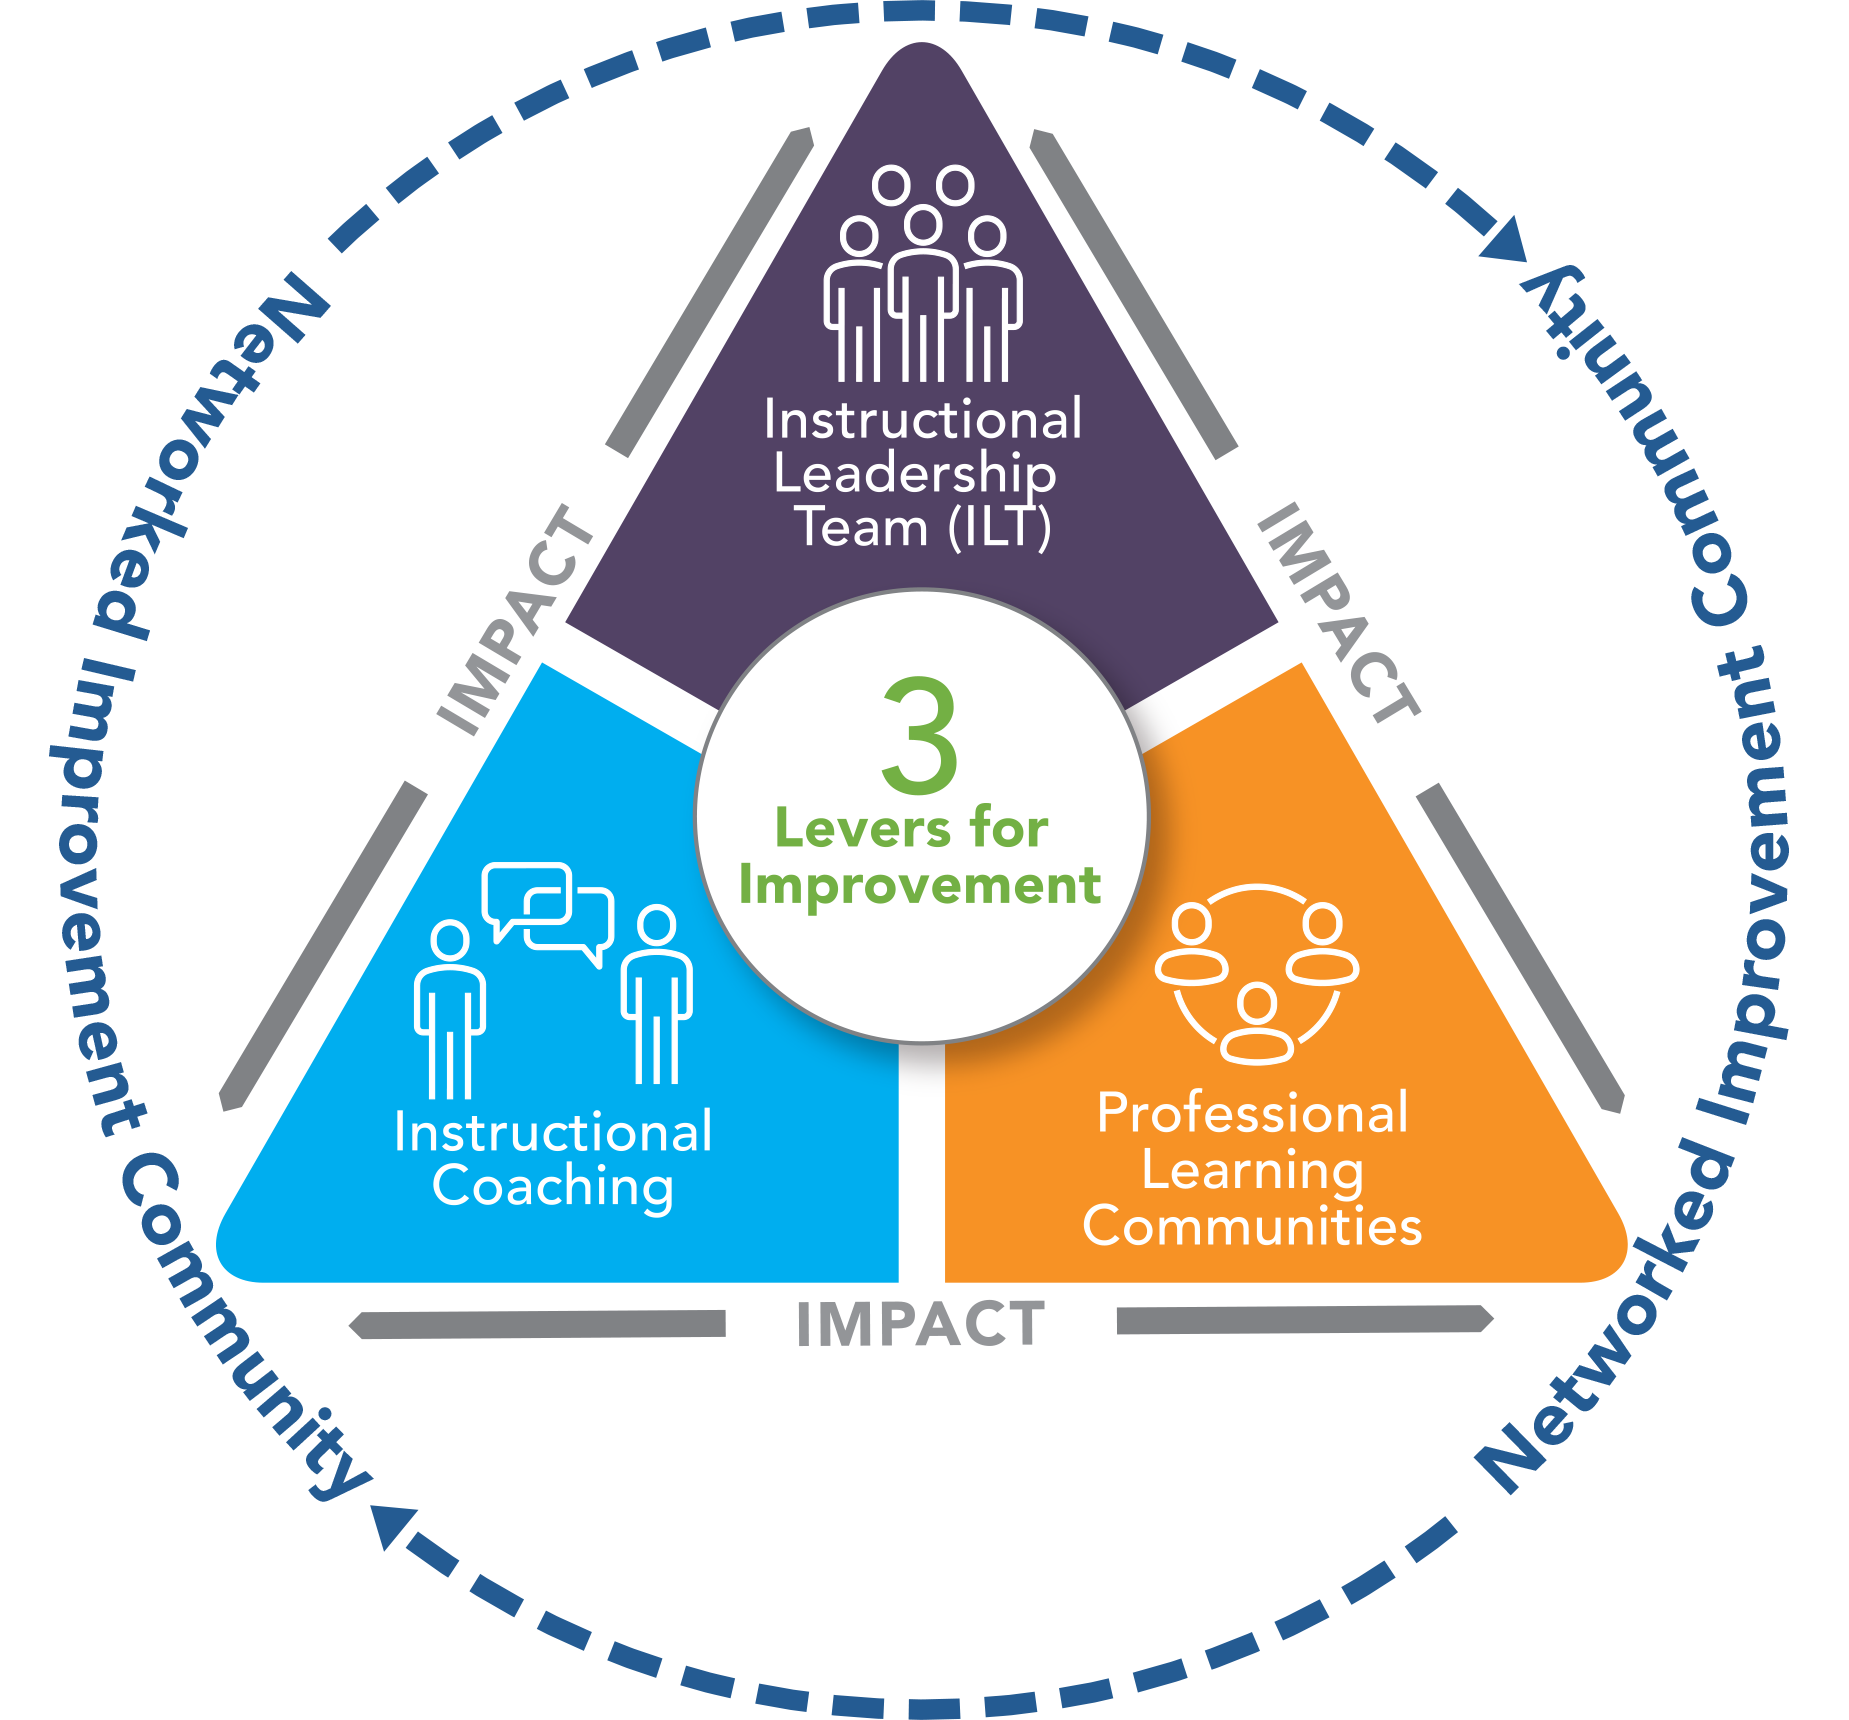 Three Key Levers for School Improvement - ILTs, coaching, & PLCs